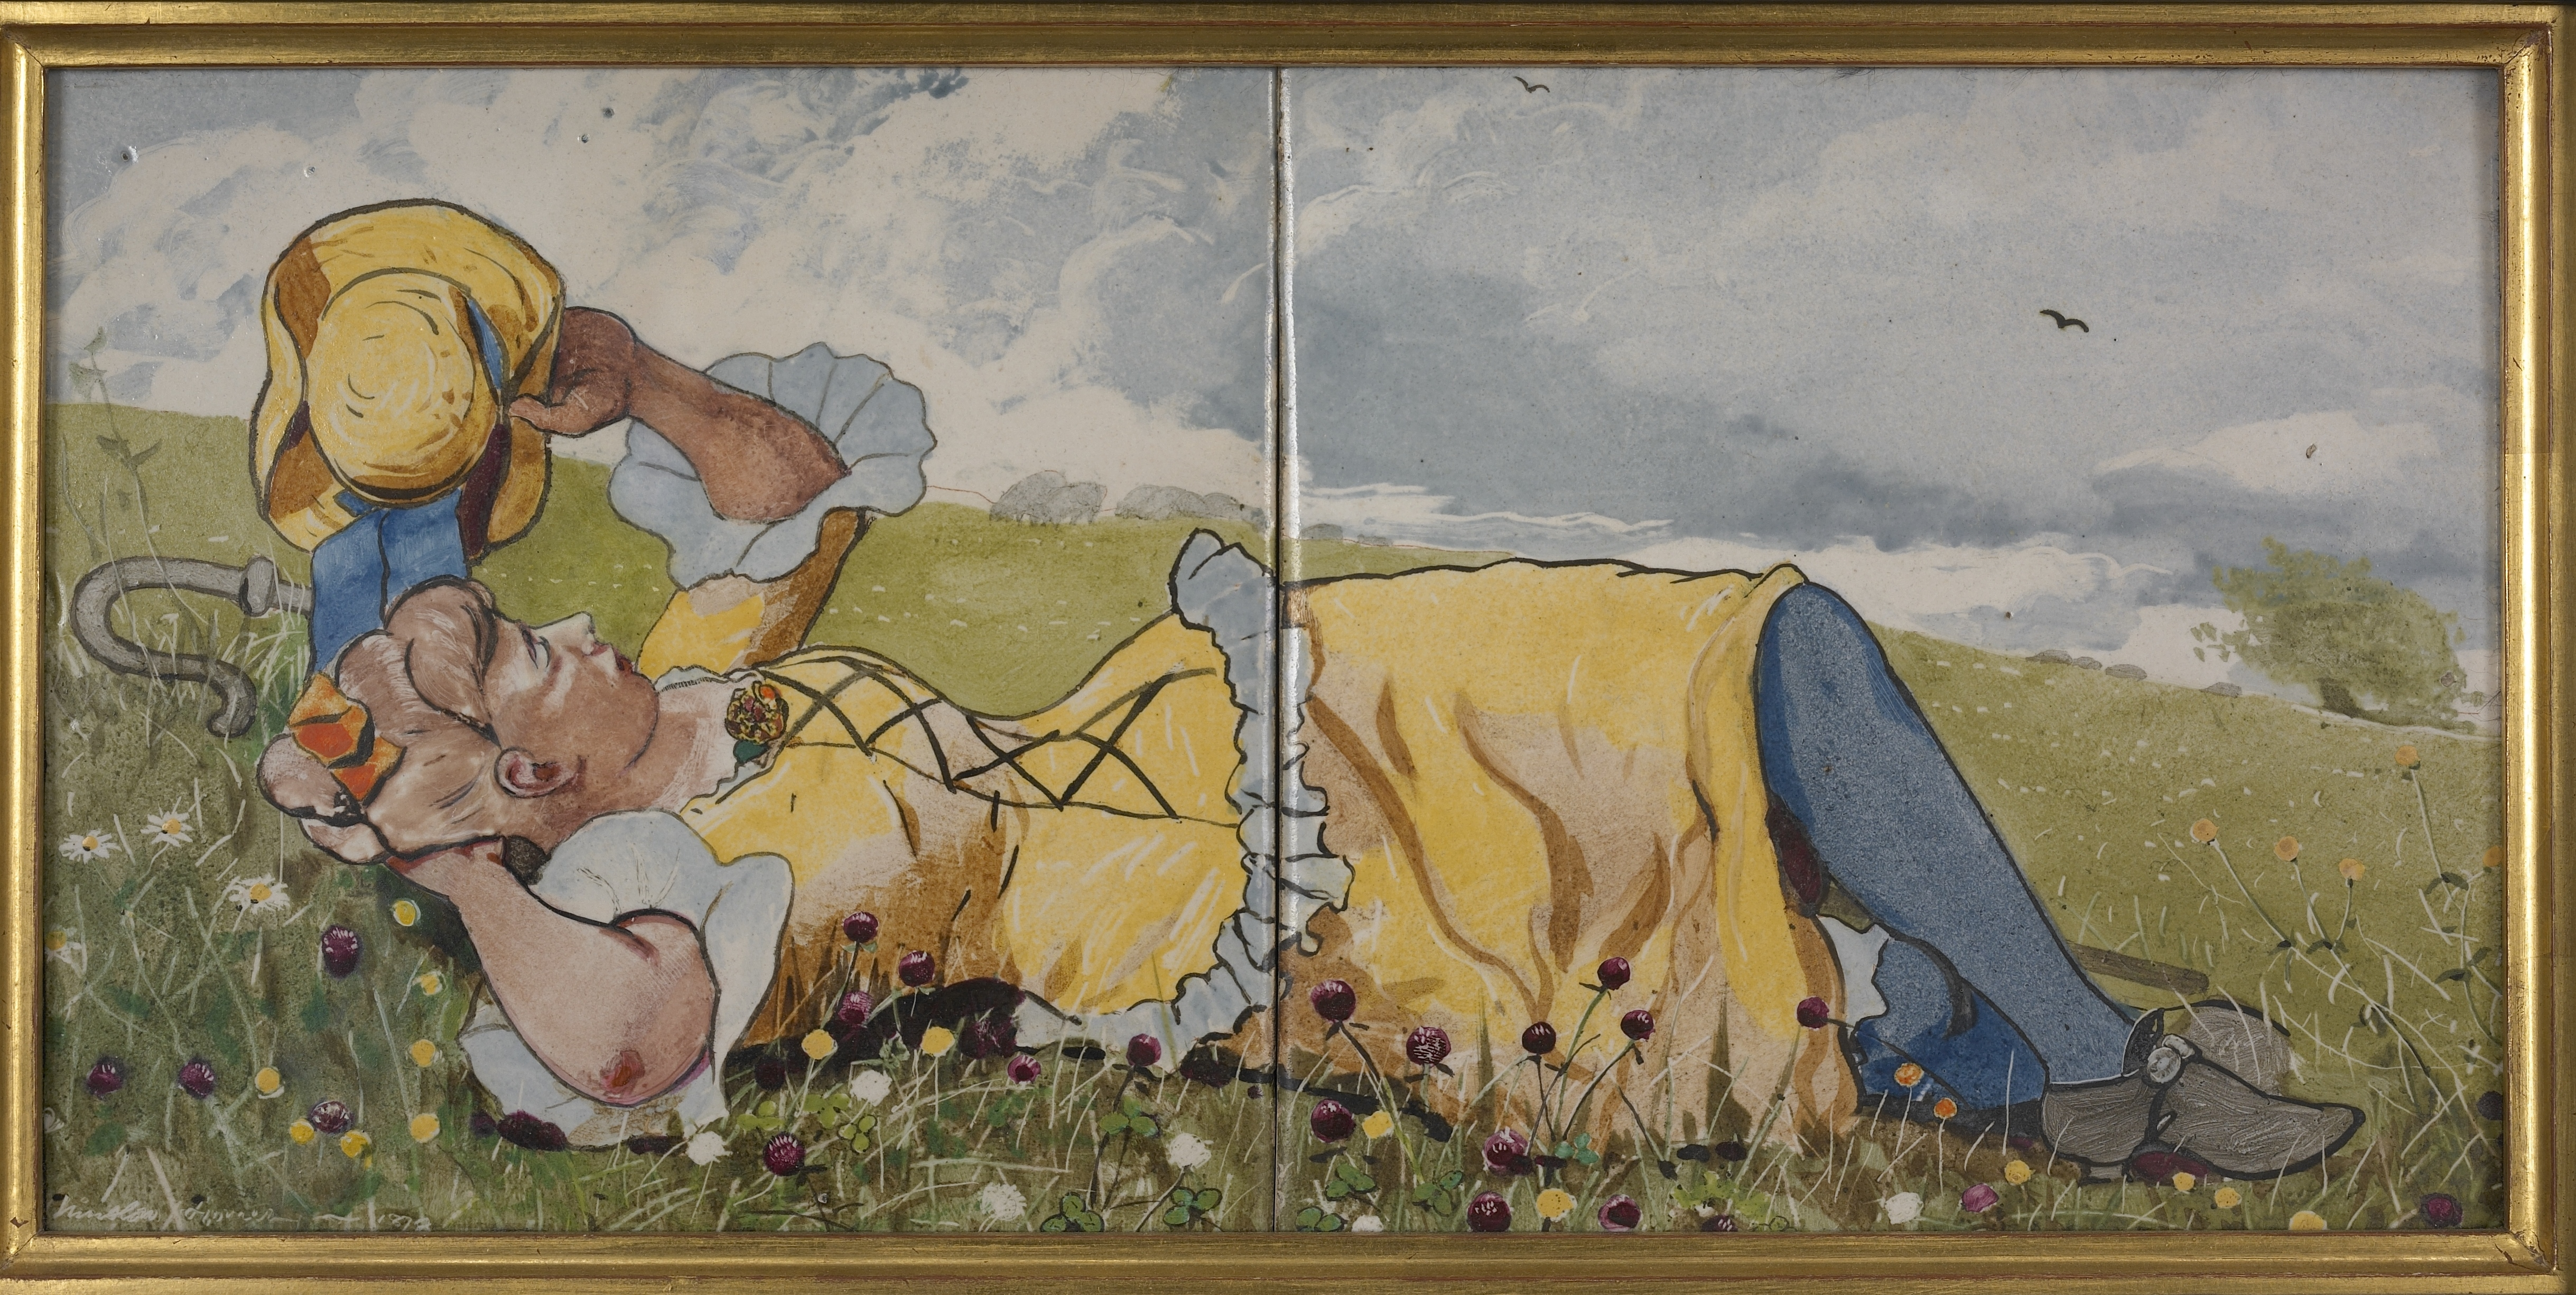 The Tile Club: Camaraderie and American Plein-Air Painting On View ...